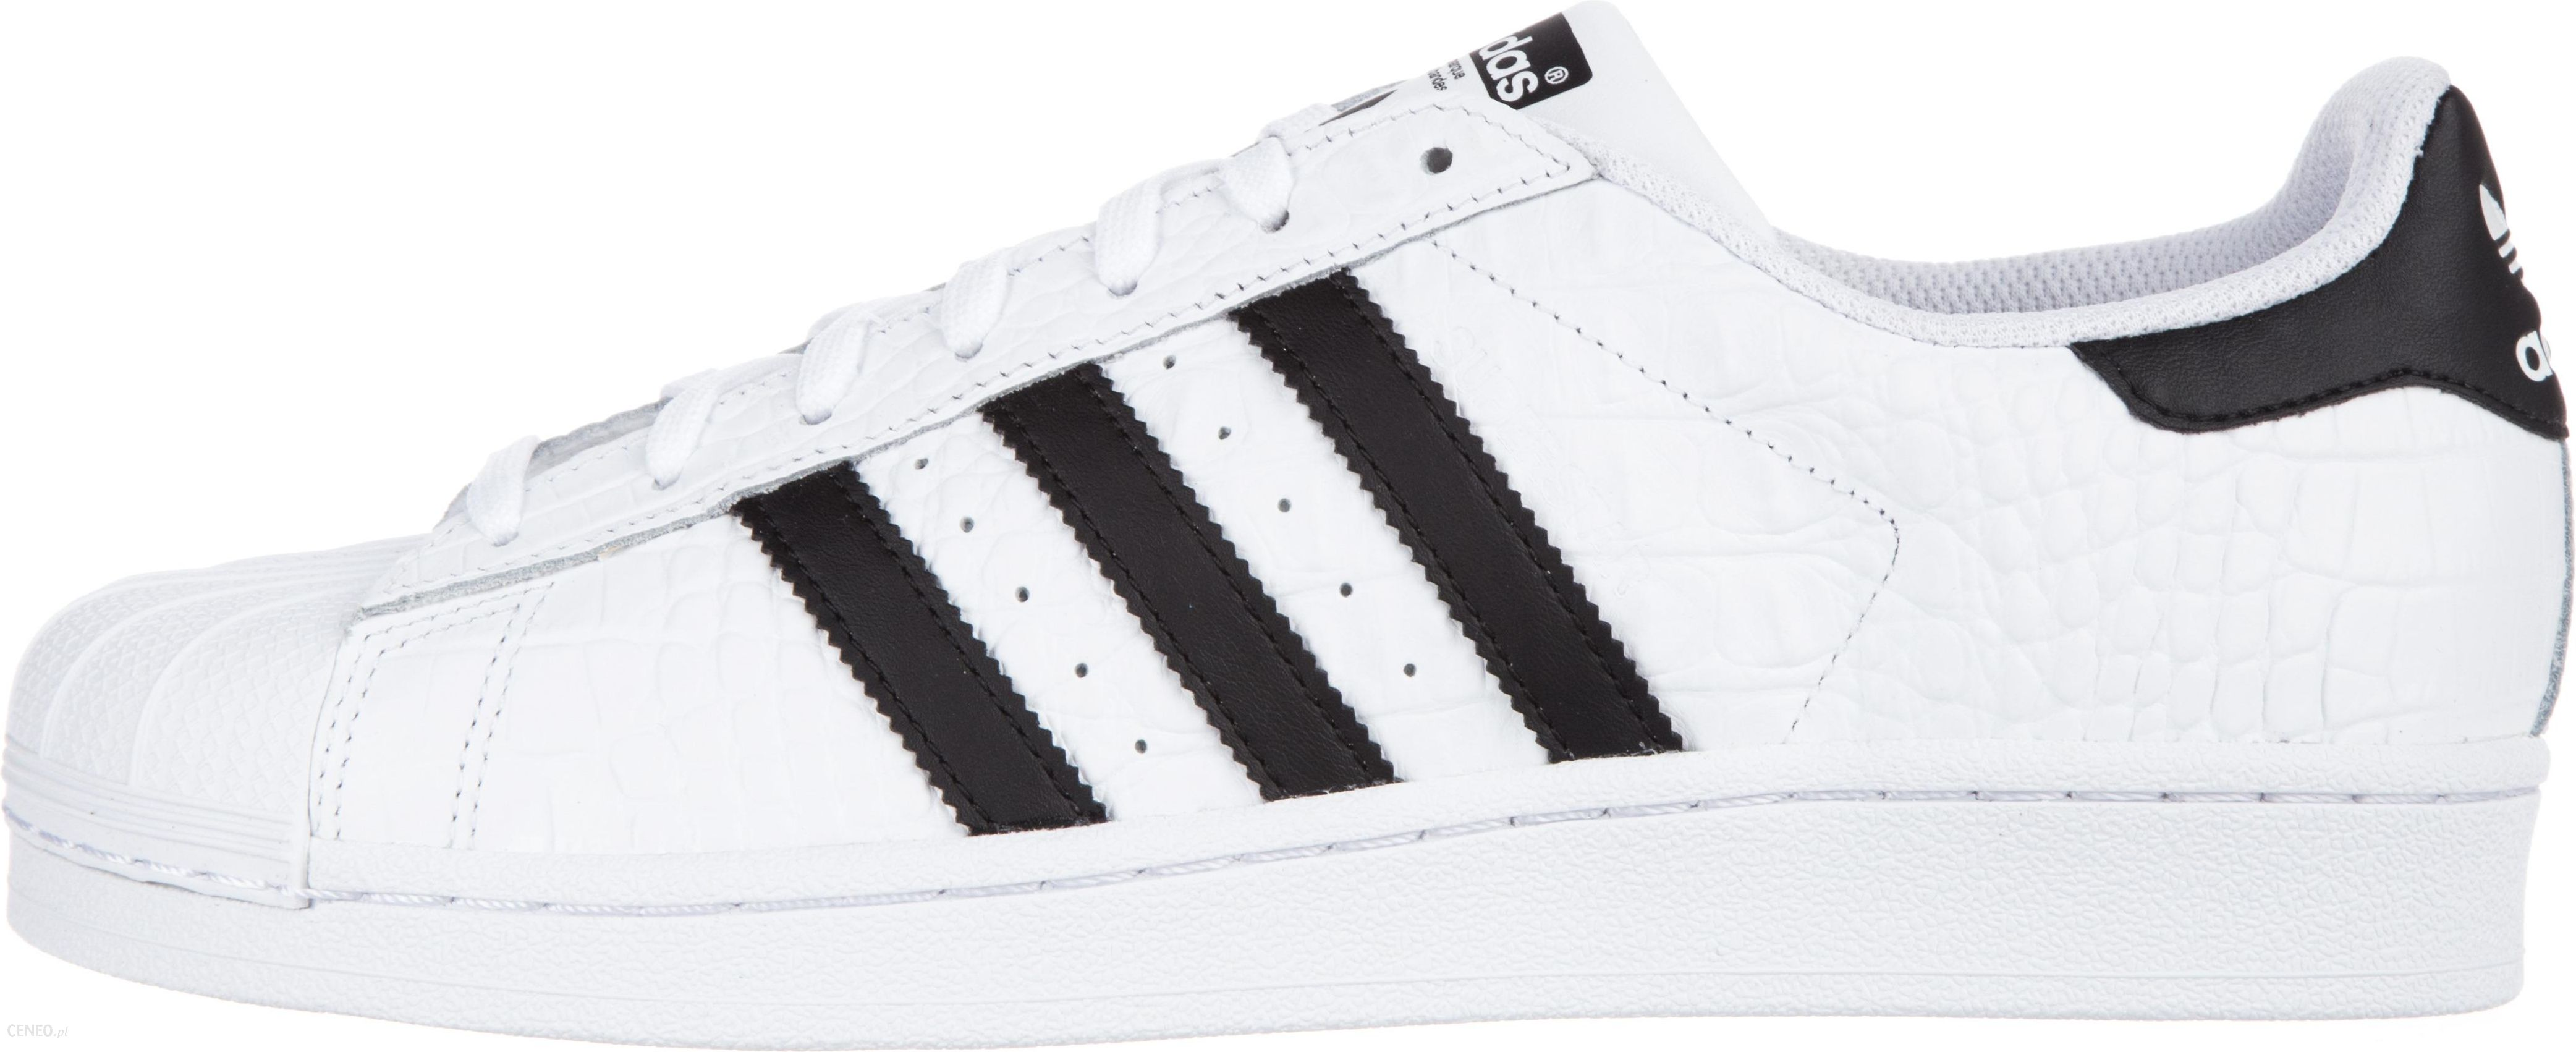 adidas superstar originals ceneo